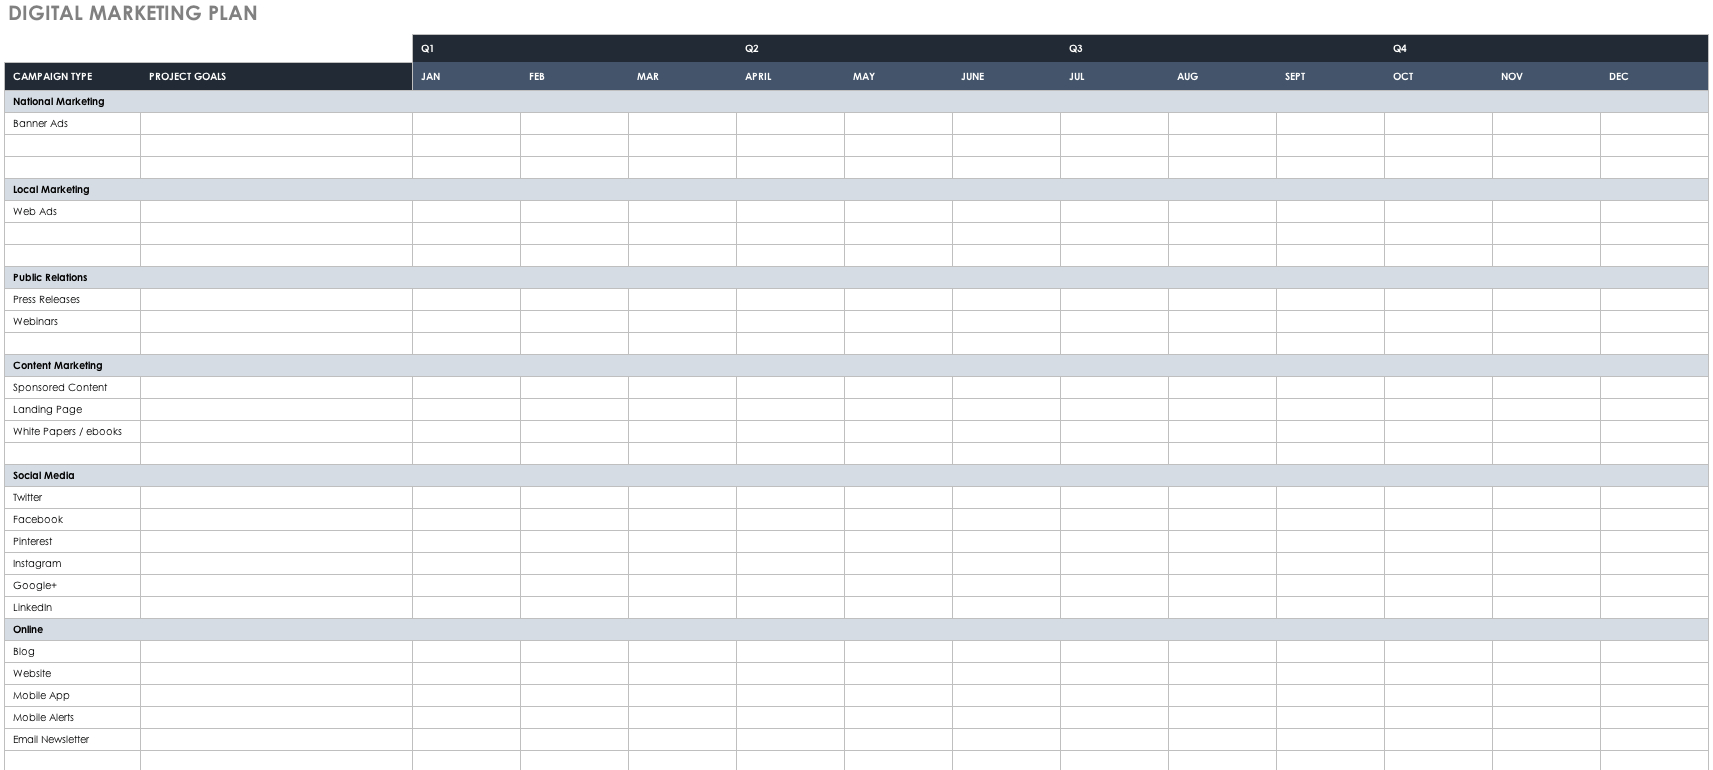 Free Marketing Plan Templates For Excel | Smartsheet Intended For Marketing Campaign Tracking Spreadsheet